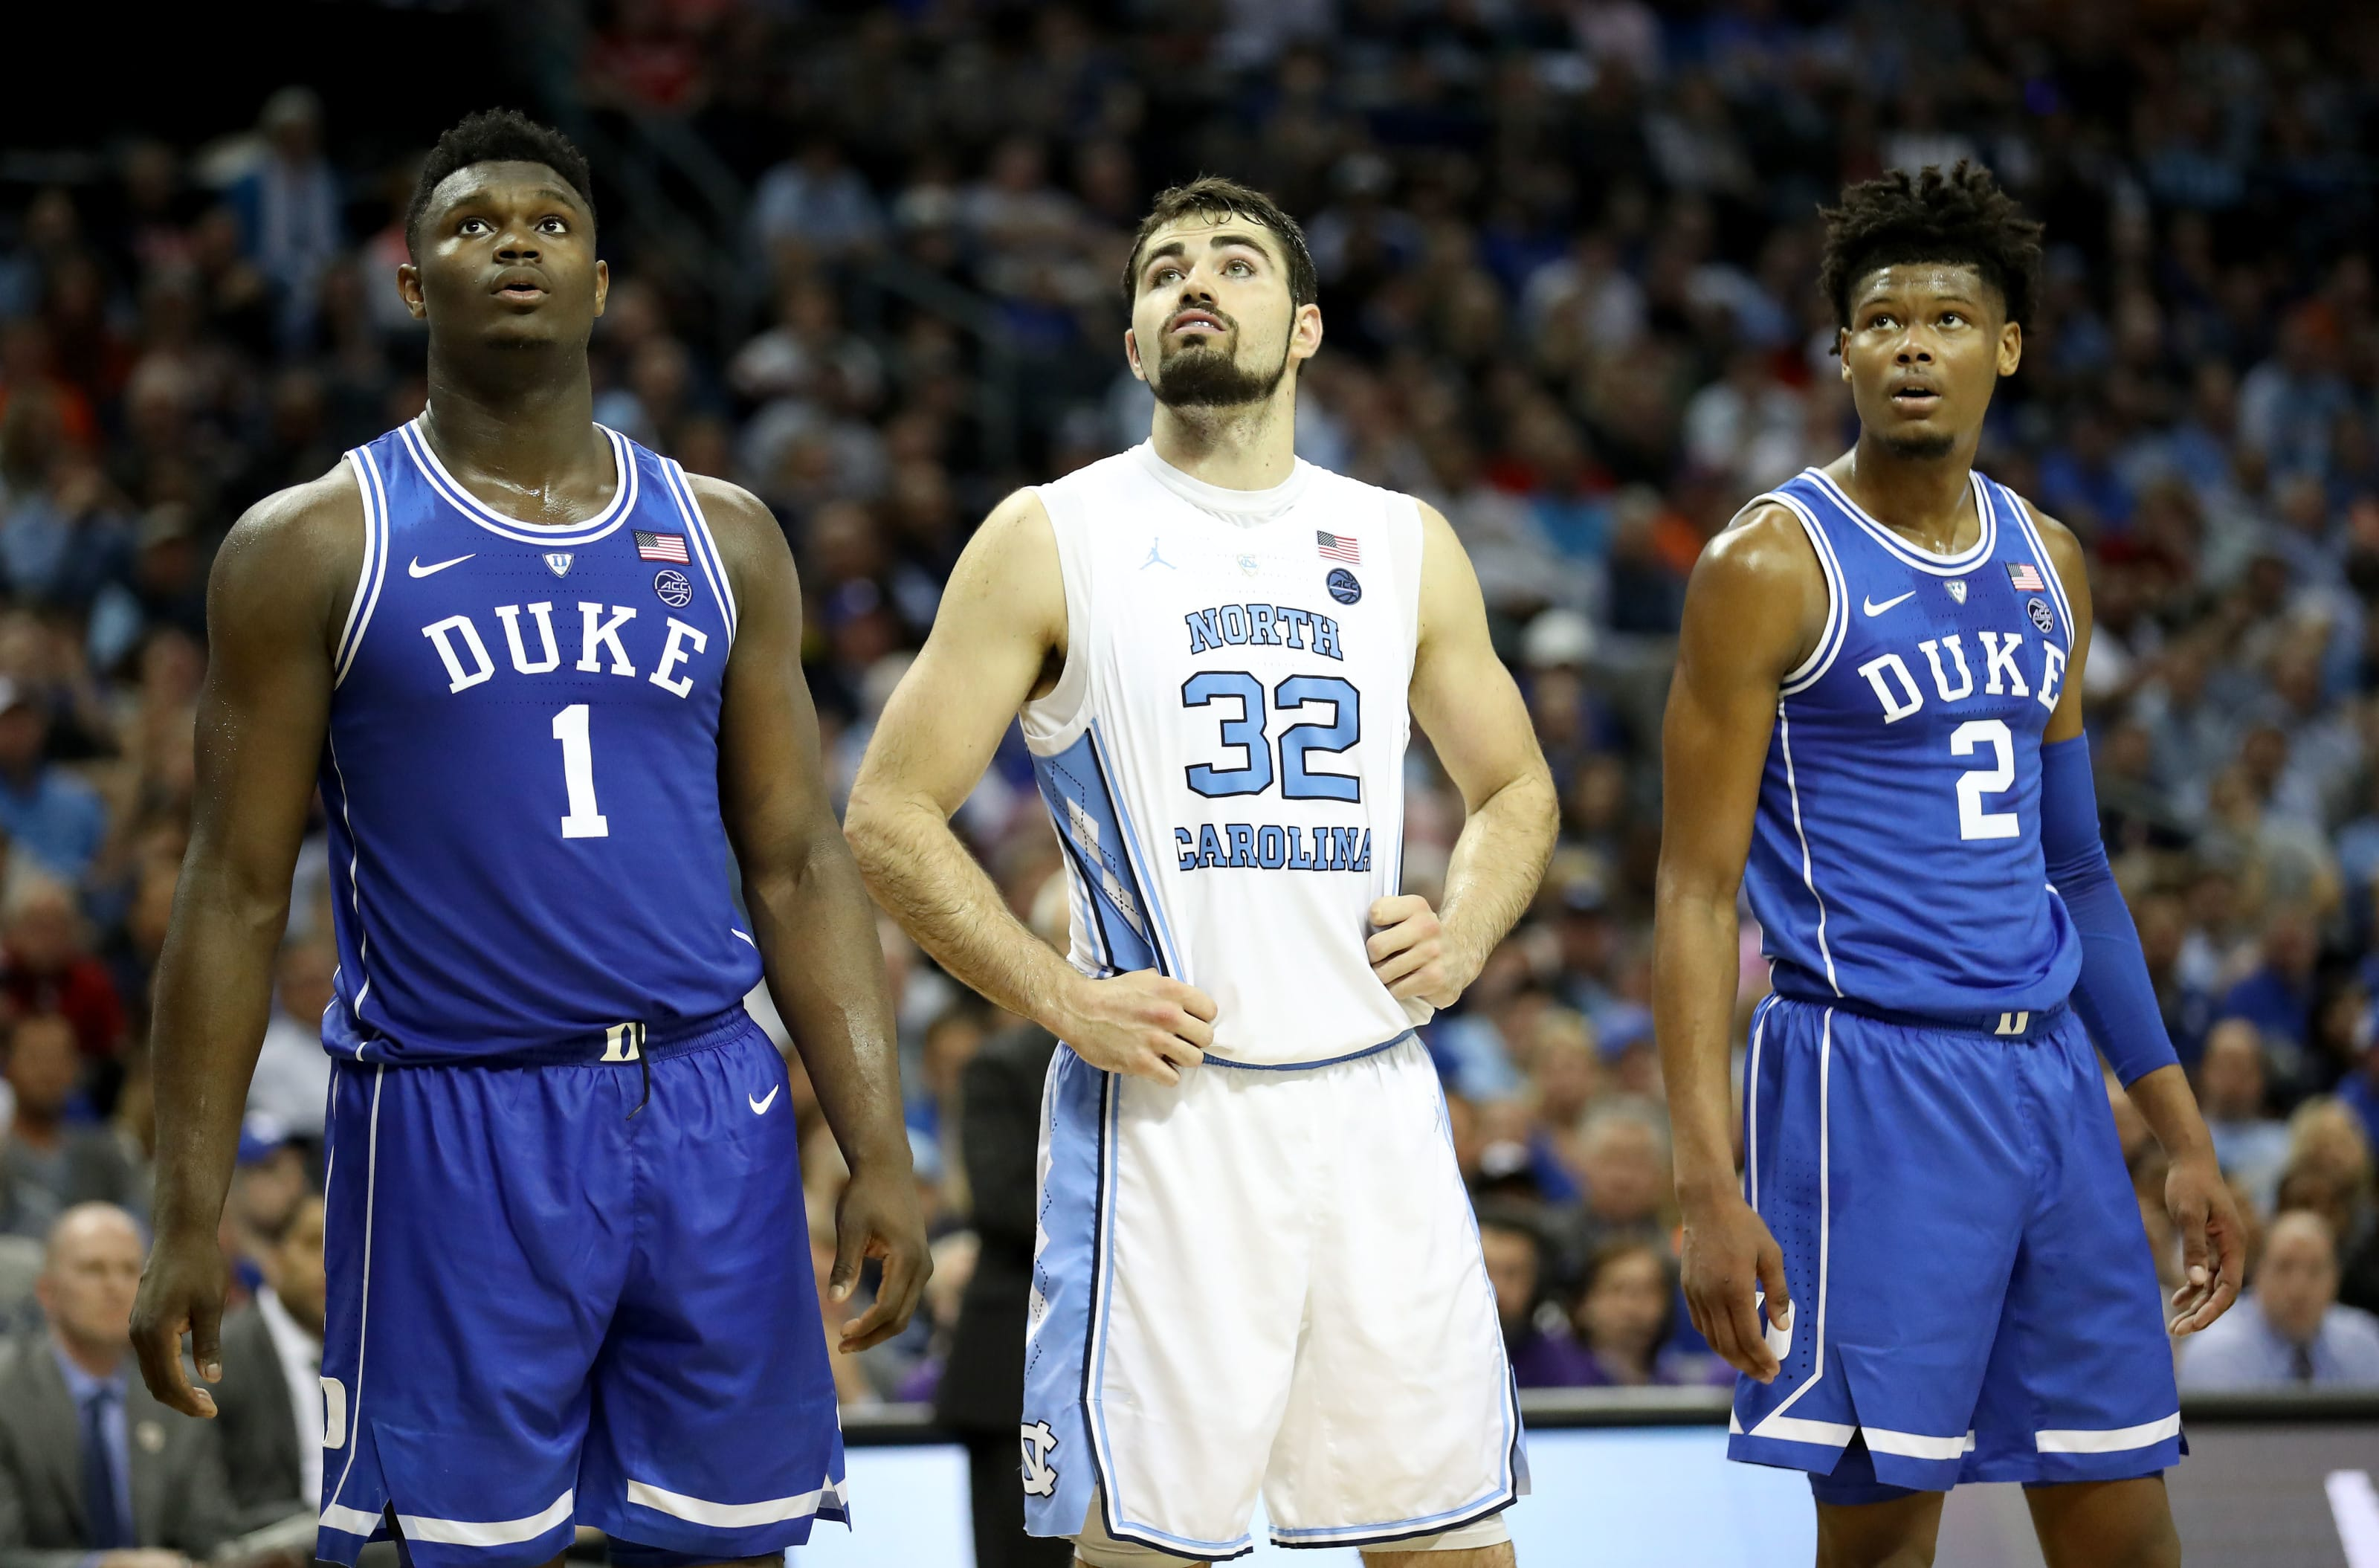 March Madness Top 10 Mid Major Players In The 2019 Ncaa: March Madness: Top 100 Players In The 2019 NCAA Tournament